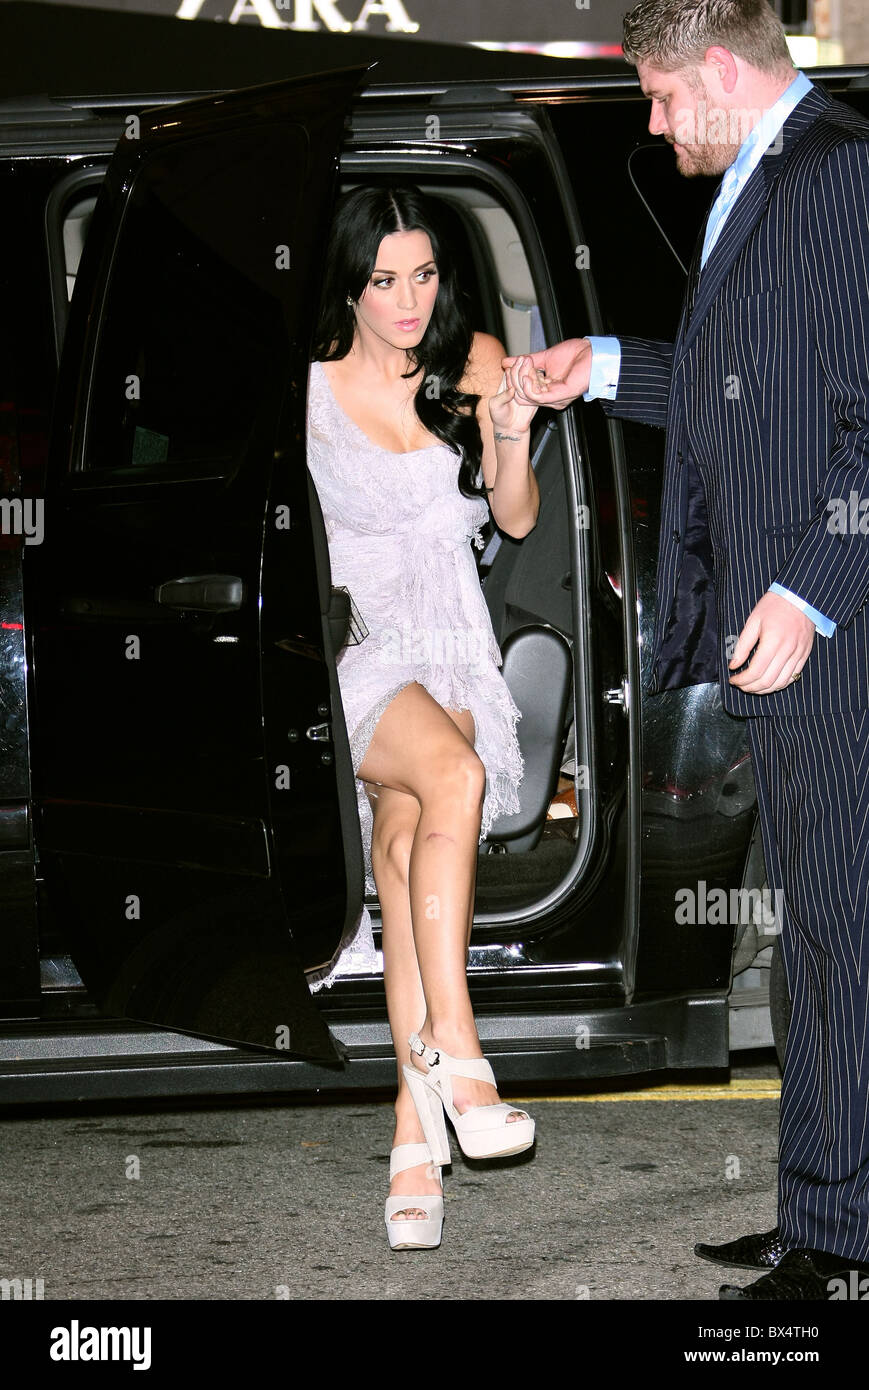 KATY PERRY ARRIVES AT THE PREMIERE OF THE TEMPEST HOLLYWOOD LOS ANGELES CALIFORNIA USA 06 December 2010 - Stock Image